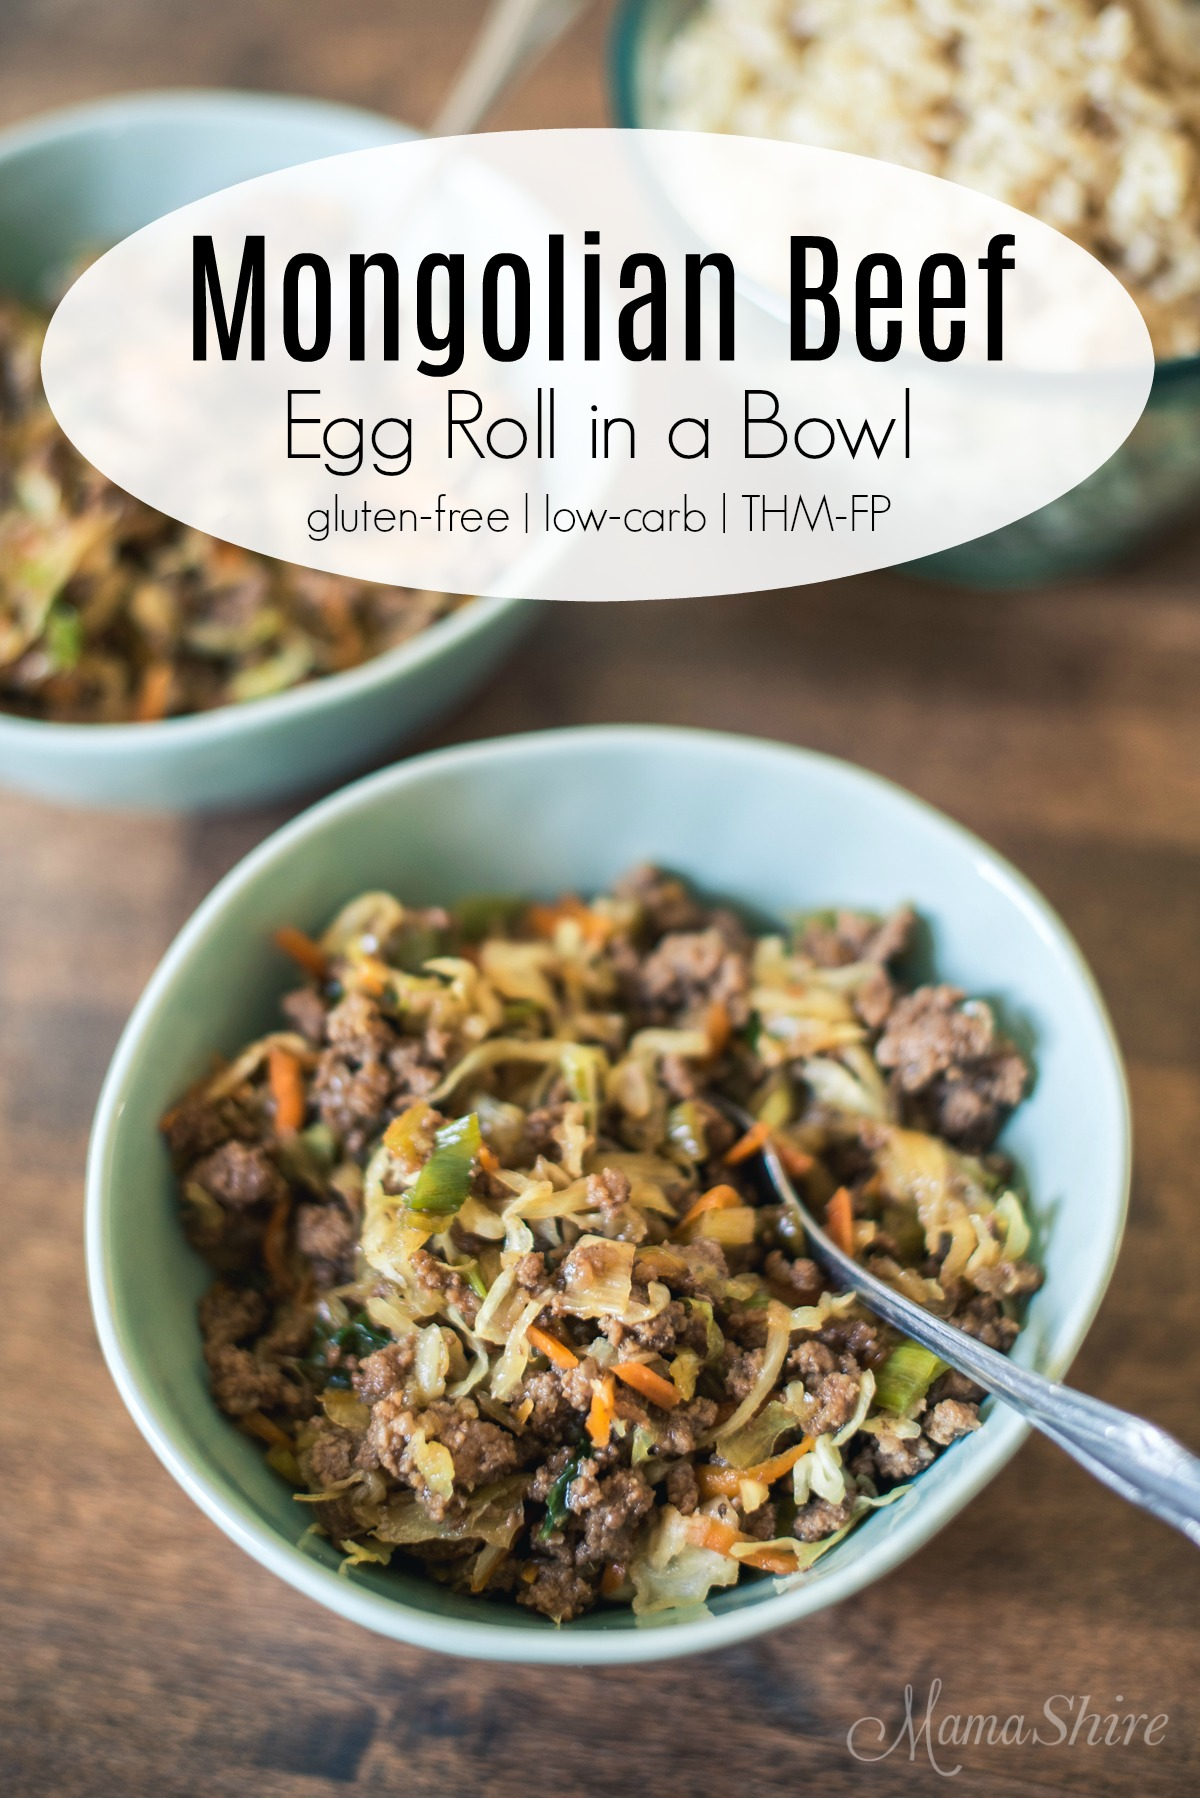 Mongolian Beef Egg Roll in a Bowl.